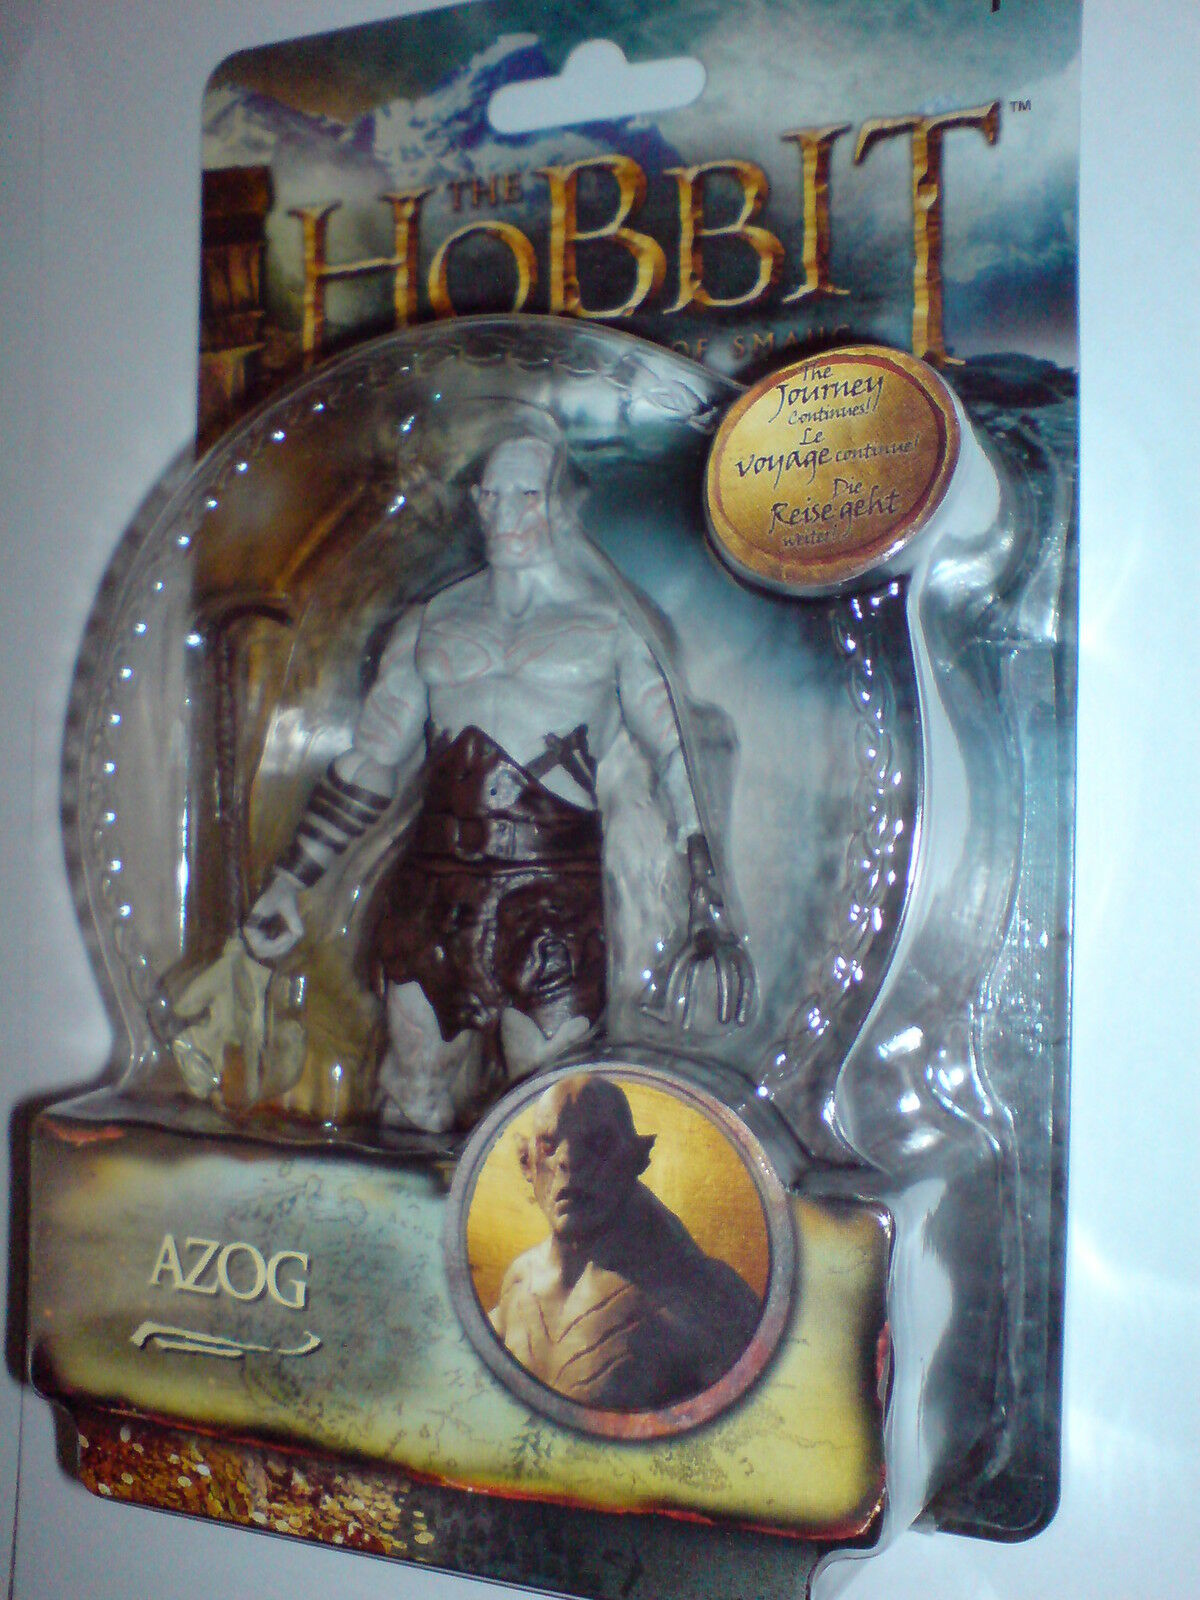 THE HOBBIT - THE THE THE DESOLATION OF SMAUG -3.75  AZOG W2 ACTION FIGURE NEW RARE V 810621